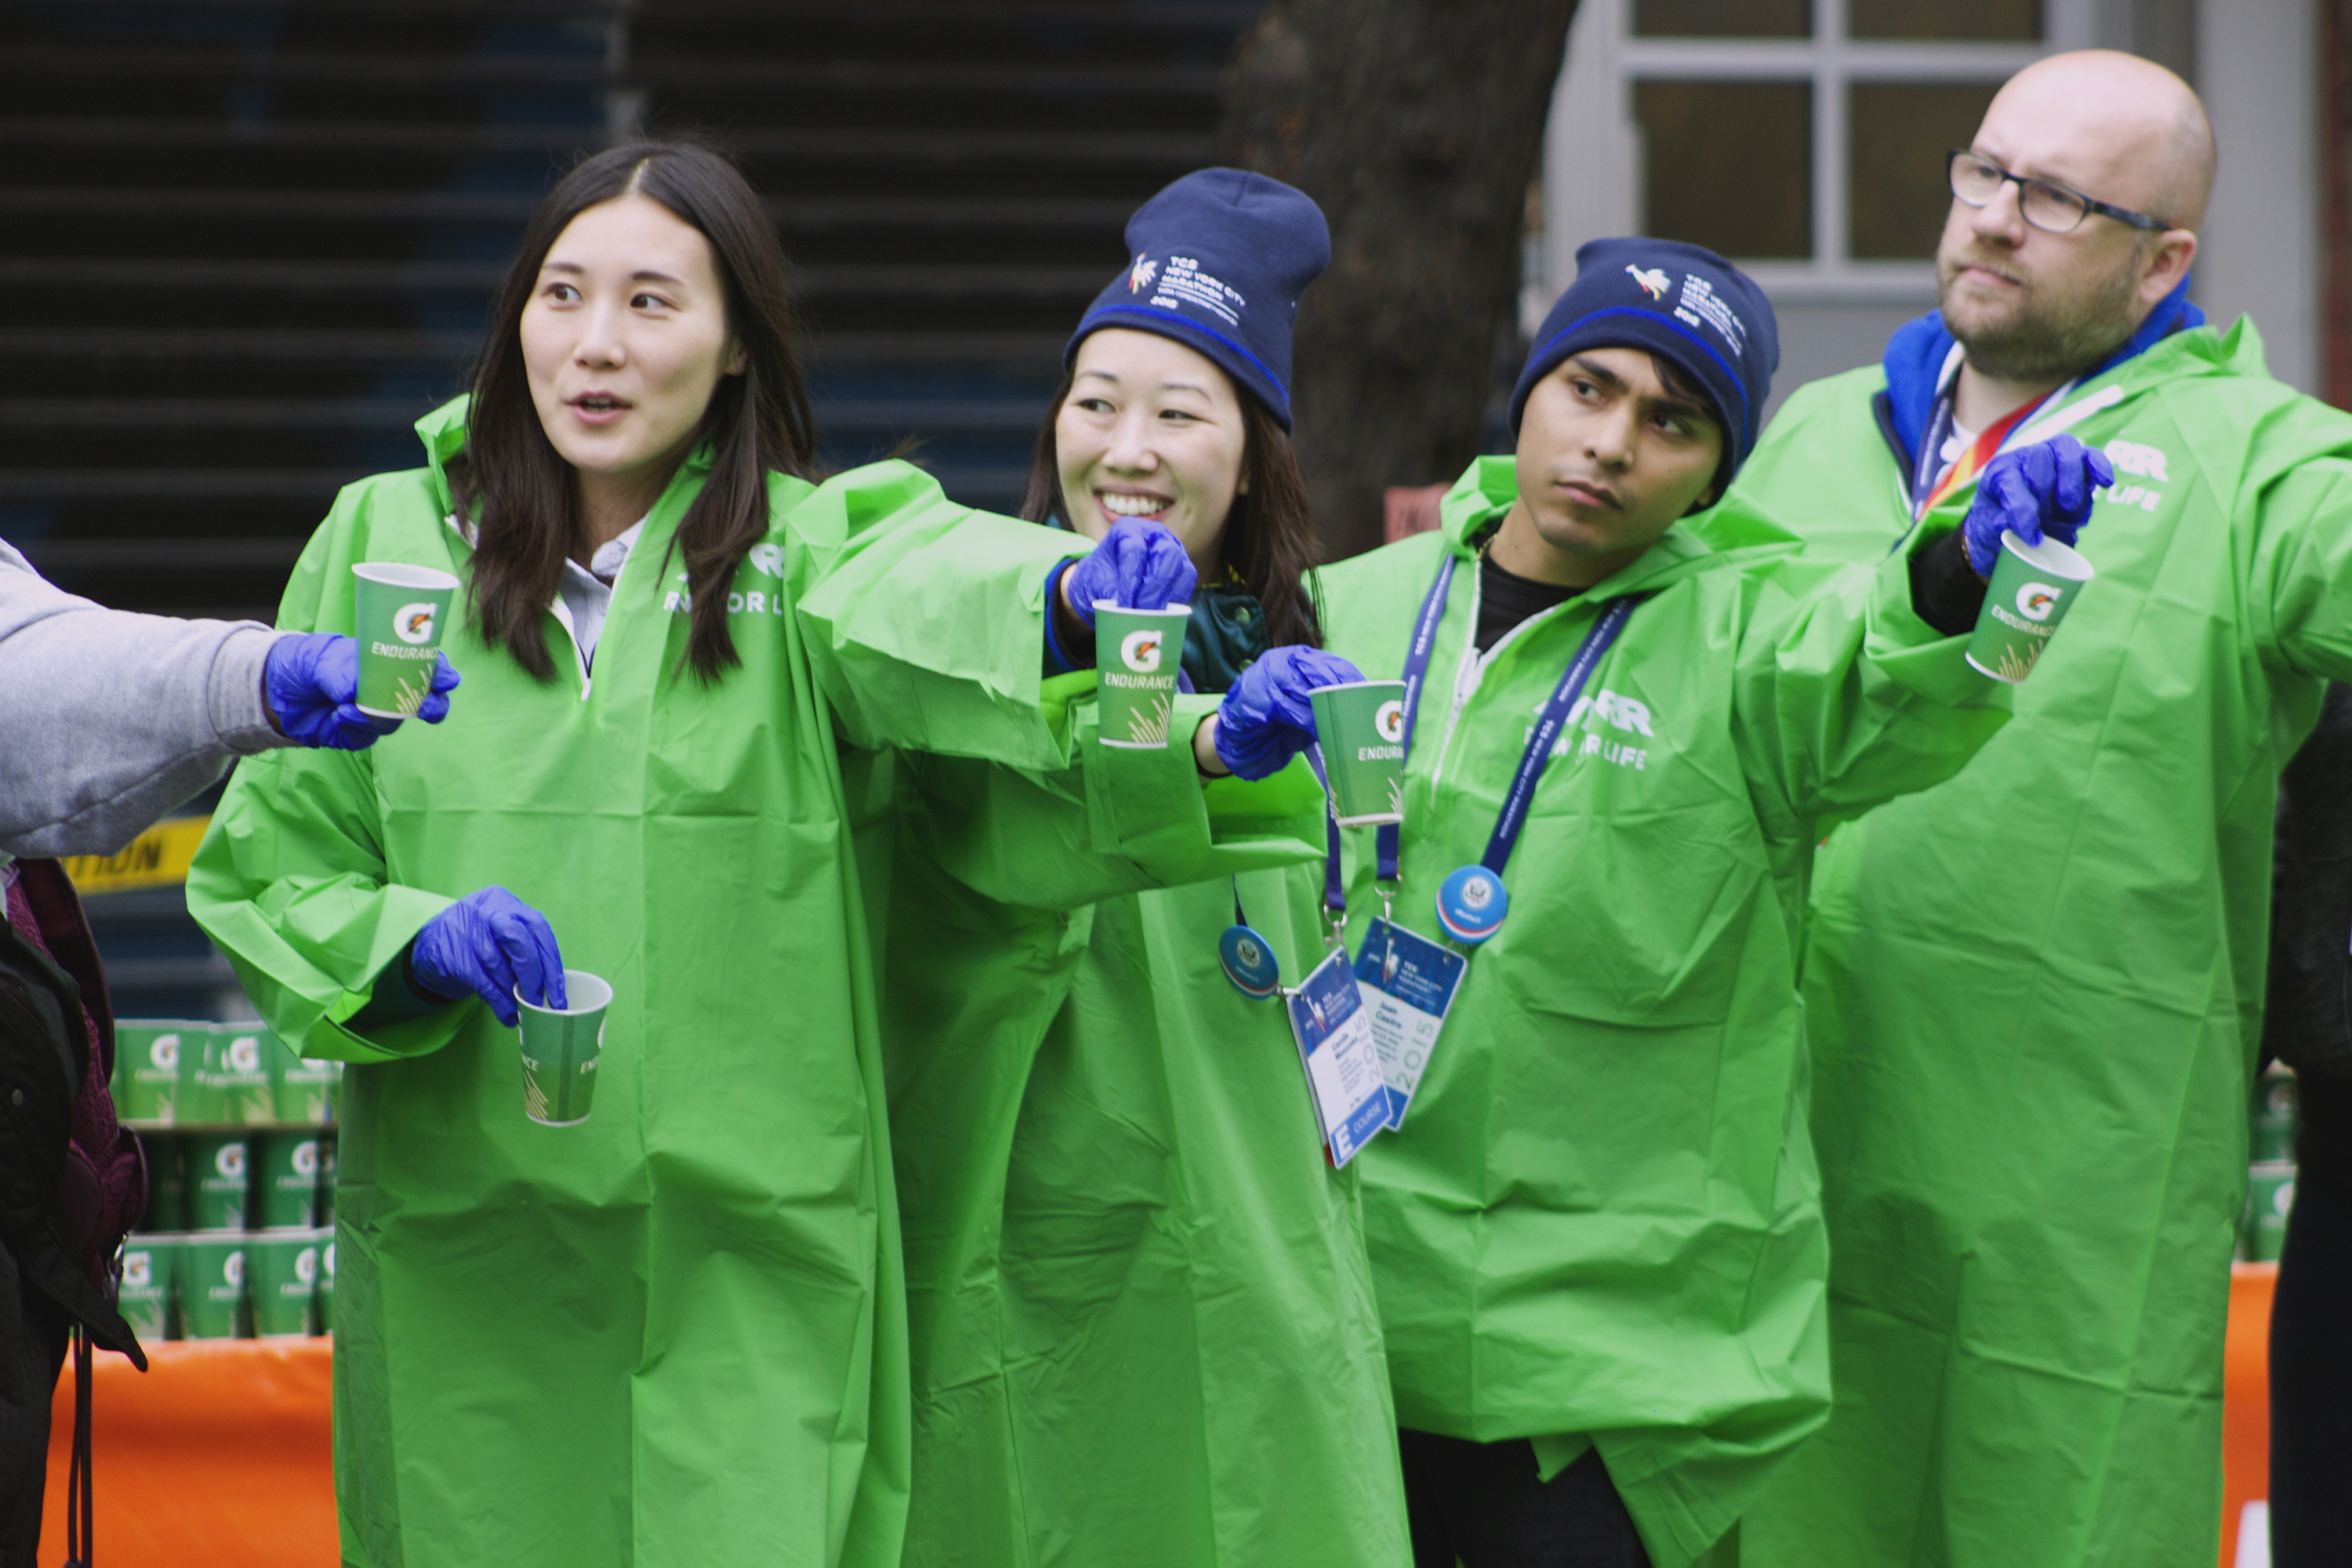 Four young people in green rain slickers hold cups of water on side of marathon course.